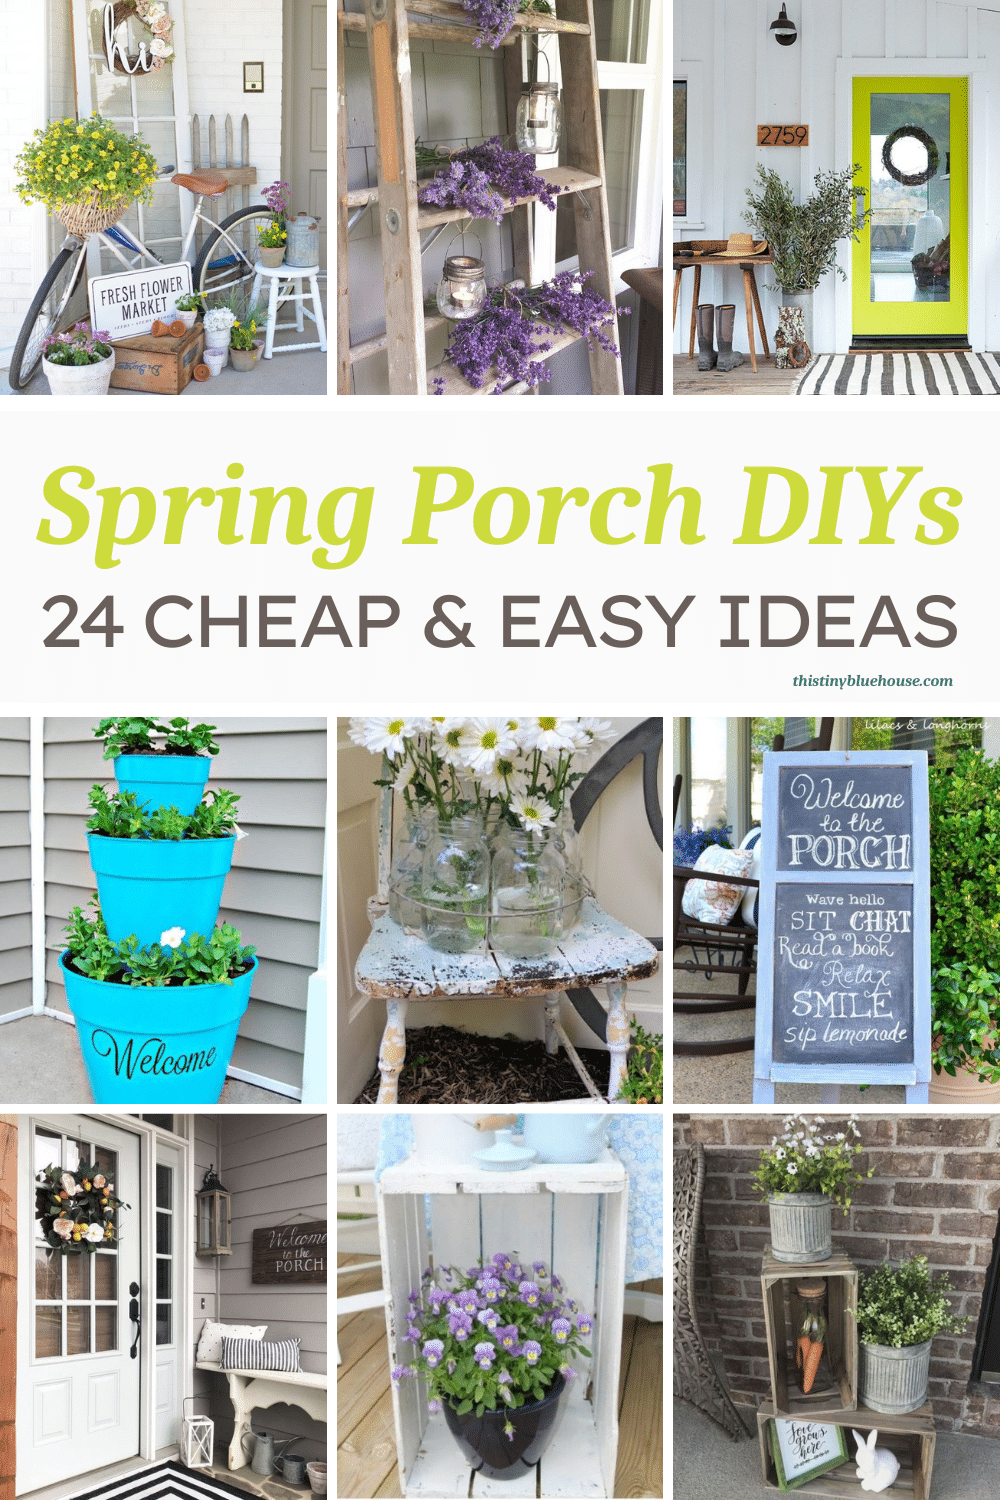 Welcome spring and warmer weather with a fun DIY spring porch makeover. Here are over 20 absolutely gorgeous DIY Spring Porch ideas to freshen up your porch and front door just in time for spring and the warmer weather!